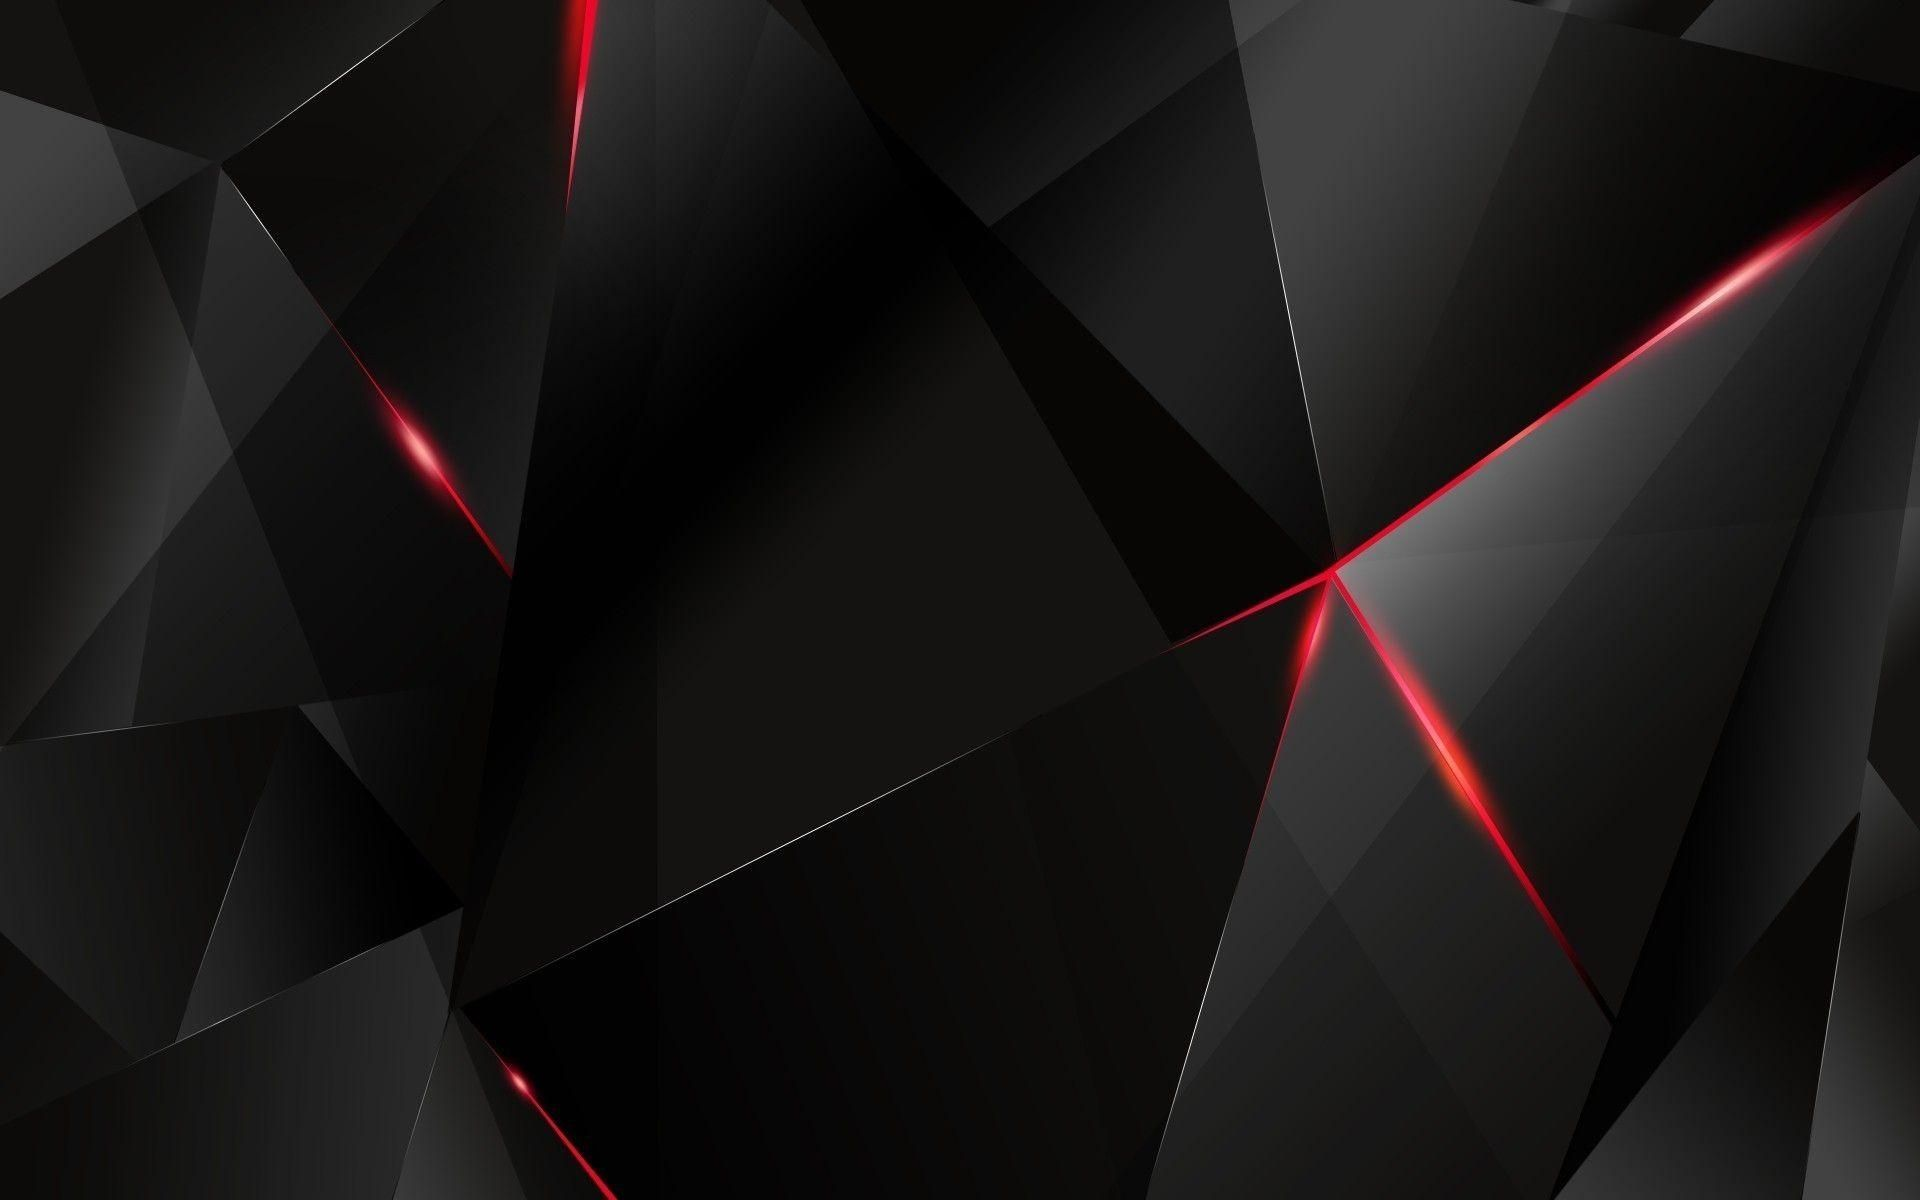 10 Top Hd Wallpapers Black And Red Full Hd 1080p For Pc Desktop Red And Black Wallpaper Black Wallpaper Red Wallpaper